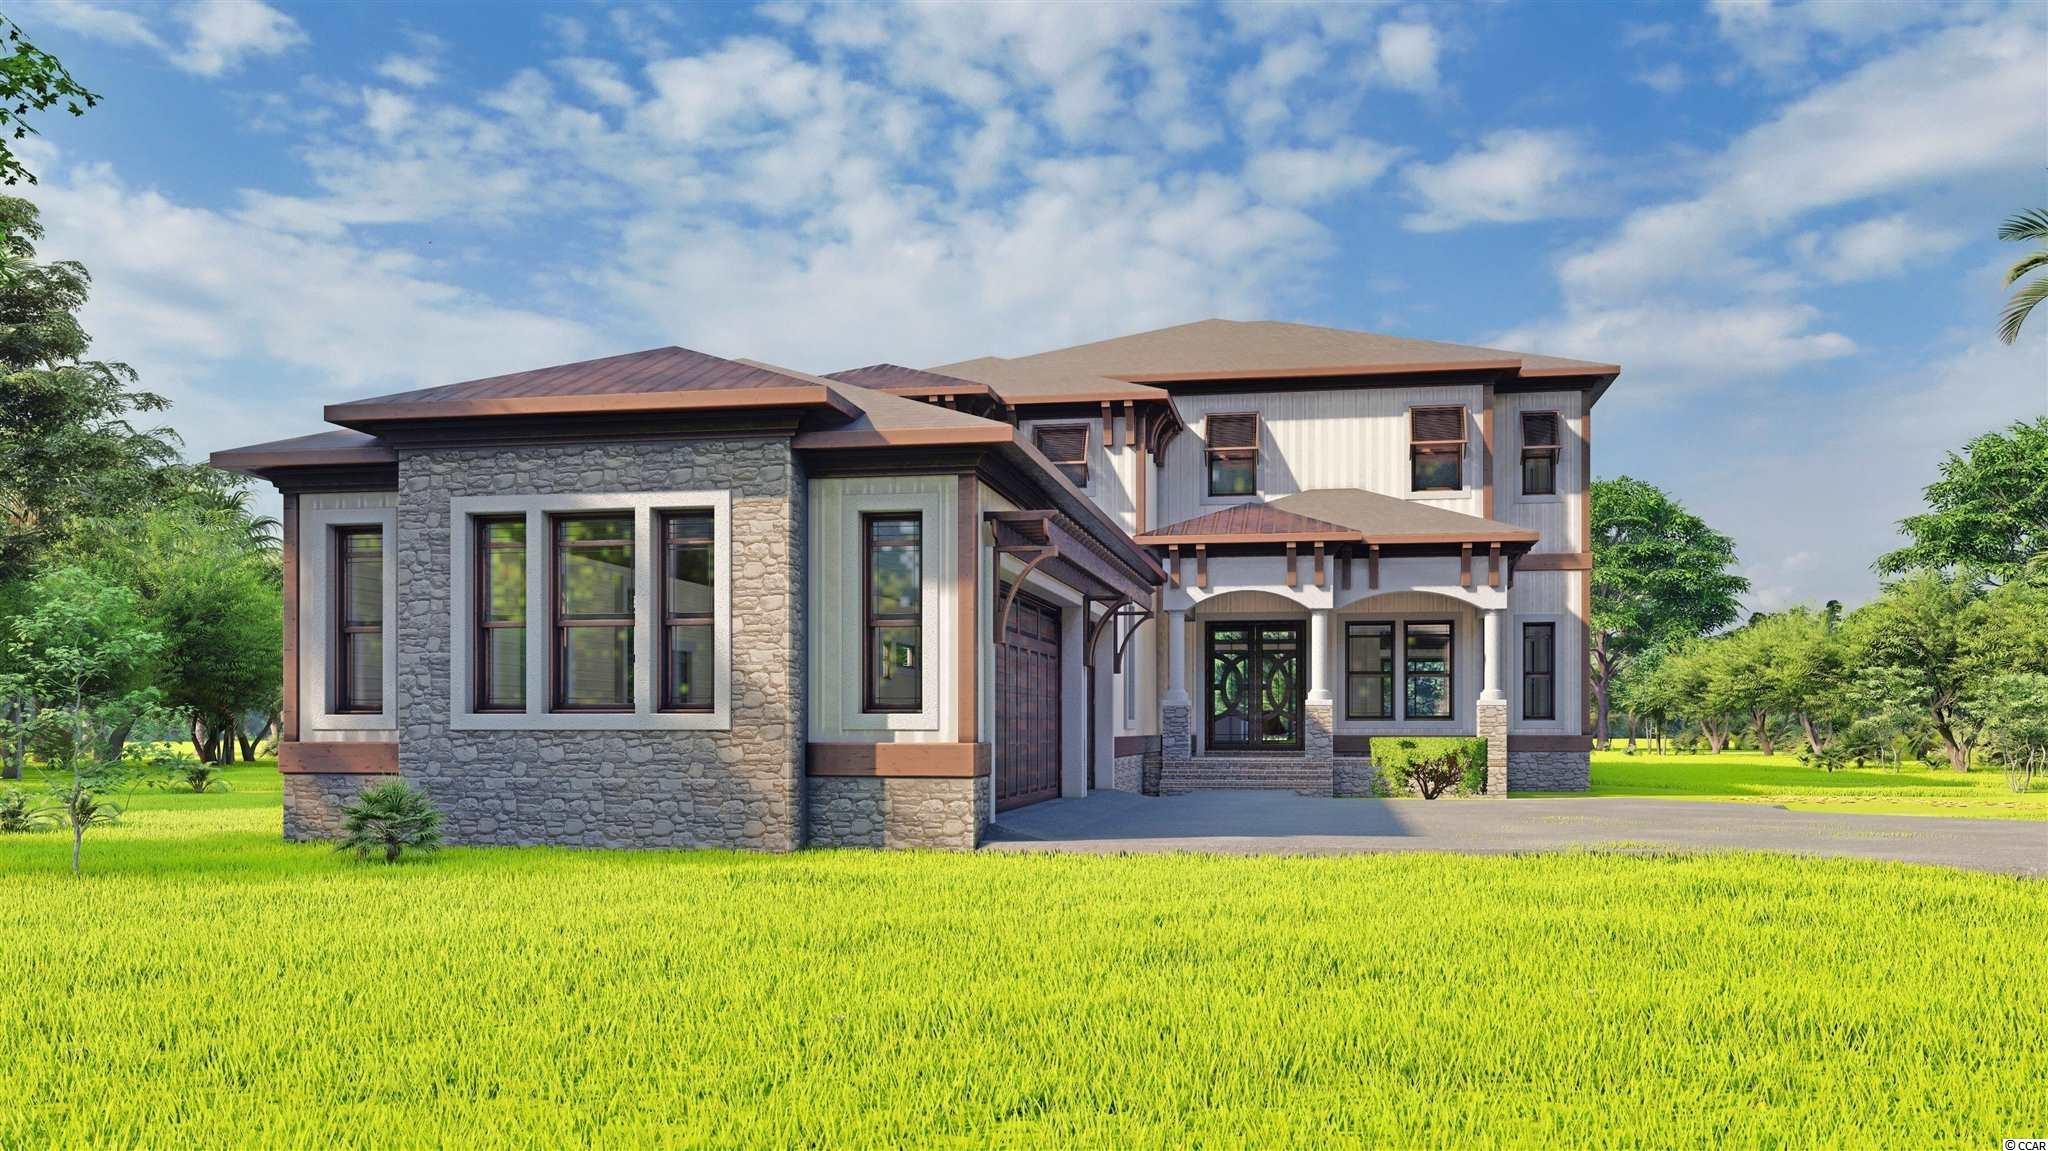 Open. Elegant. Impressive. Embrace the best of coastal living in this 5 BR, 4.5 BA Home. This home feels especially spacious with open floor plan and high ceilings. You'll love spending time in the heart of this home: an expansive great room that opens to your luxurious kitchen, where a center island offers abundant sitting for casual dining, and enough counter space to serve as a buffet for formal or informal gatherings. The open kitchen has Quartz countertops and beautiful custom cabinetry, and designer stainless-steel appliances would be the envy of chefs everywhere. A master suite with presidential tray ceilings and sumptuous bath offers a private getaway where you can start the morning in your grand walk-in shower or end the day with a nice long soak in your freestanding tub.  Backyard can be fenced. Unique features of this House are : all the rooms but the bonus room  are on the first floor, golf cart charger outlet in the garage ,epoxy garage flooring, custom windows that allow more natural light in the rooms ,modern and exclusive interior finishes, seamless gutters ,river rock in the flower beds ,outdoor salt water heated pool that is fenced (optional and not included in the listed price ),quartz countertops in the outdoor kitchen with BULL outdoor appliances, outdoor fireplace.  This home to be built by well-known and respected local builder in the prestigious gated community Waterbridge Plantation. Some of the feature include a fitness center, walk-in fire pit, swim up refreshment bar, cascading water walls, heated whirled pool and the largest residential pool in SC. Waterbridge has a 66 acre recreational lake for fishing and boating. If you want a perfect location that is surrounded by all that Myrtle Beach has to offer with the upscale lifestyle, look no further!Carolina Forest area offers award-winning schools, multiple little shopping centers, grocery stores, medical facilities, recreational centers, library, religious centers, bike park with the ultim